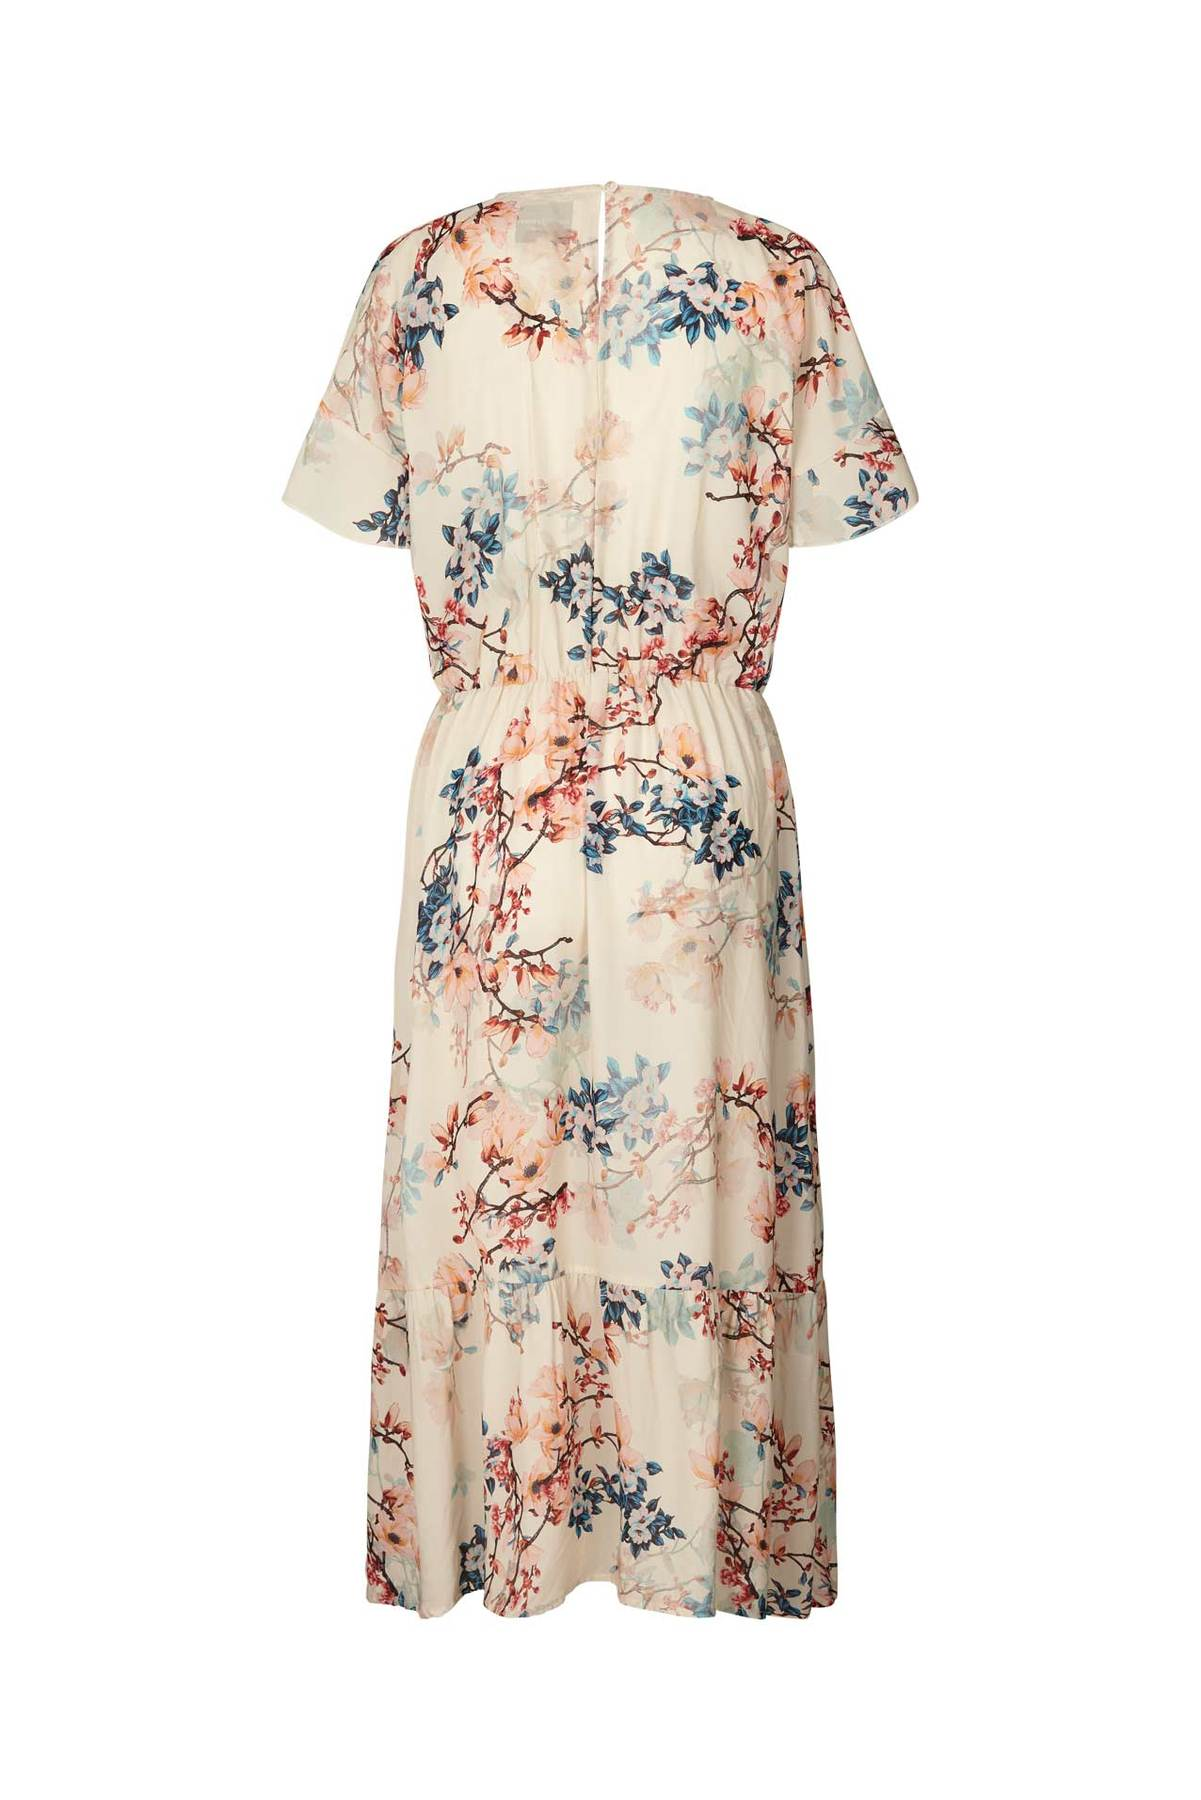 Filuca Dress in Flower Print